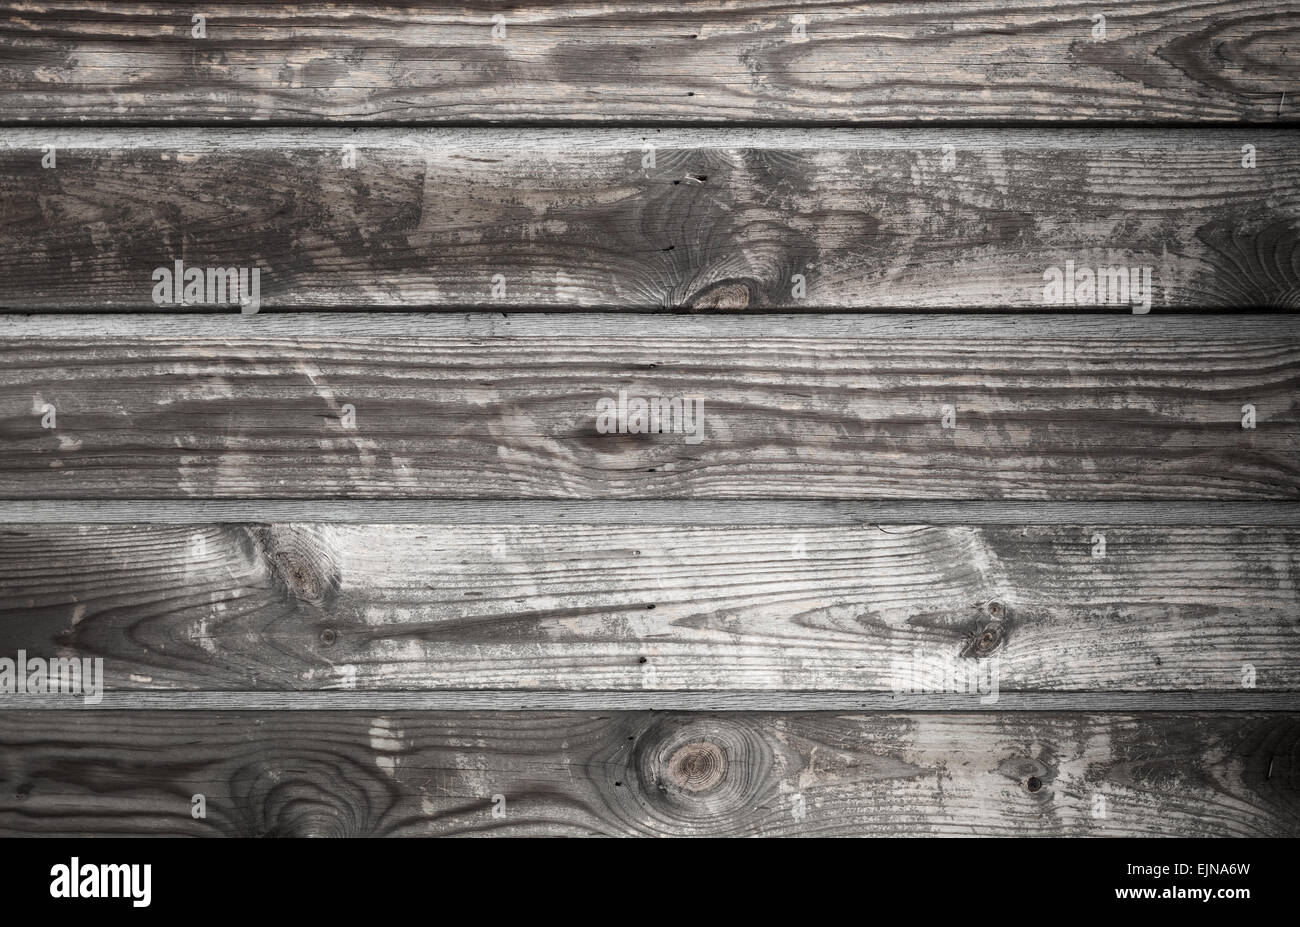 https www alamyimages fr photo image mur en bois gris fonce fait de planches de texture de fond photo 80374305 html